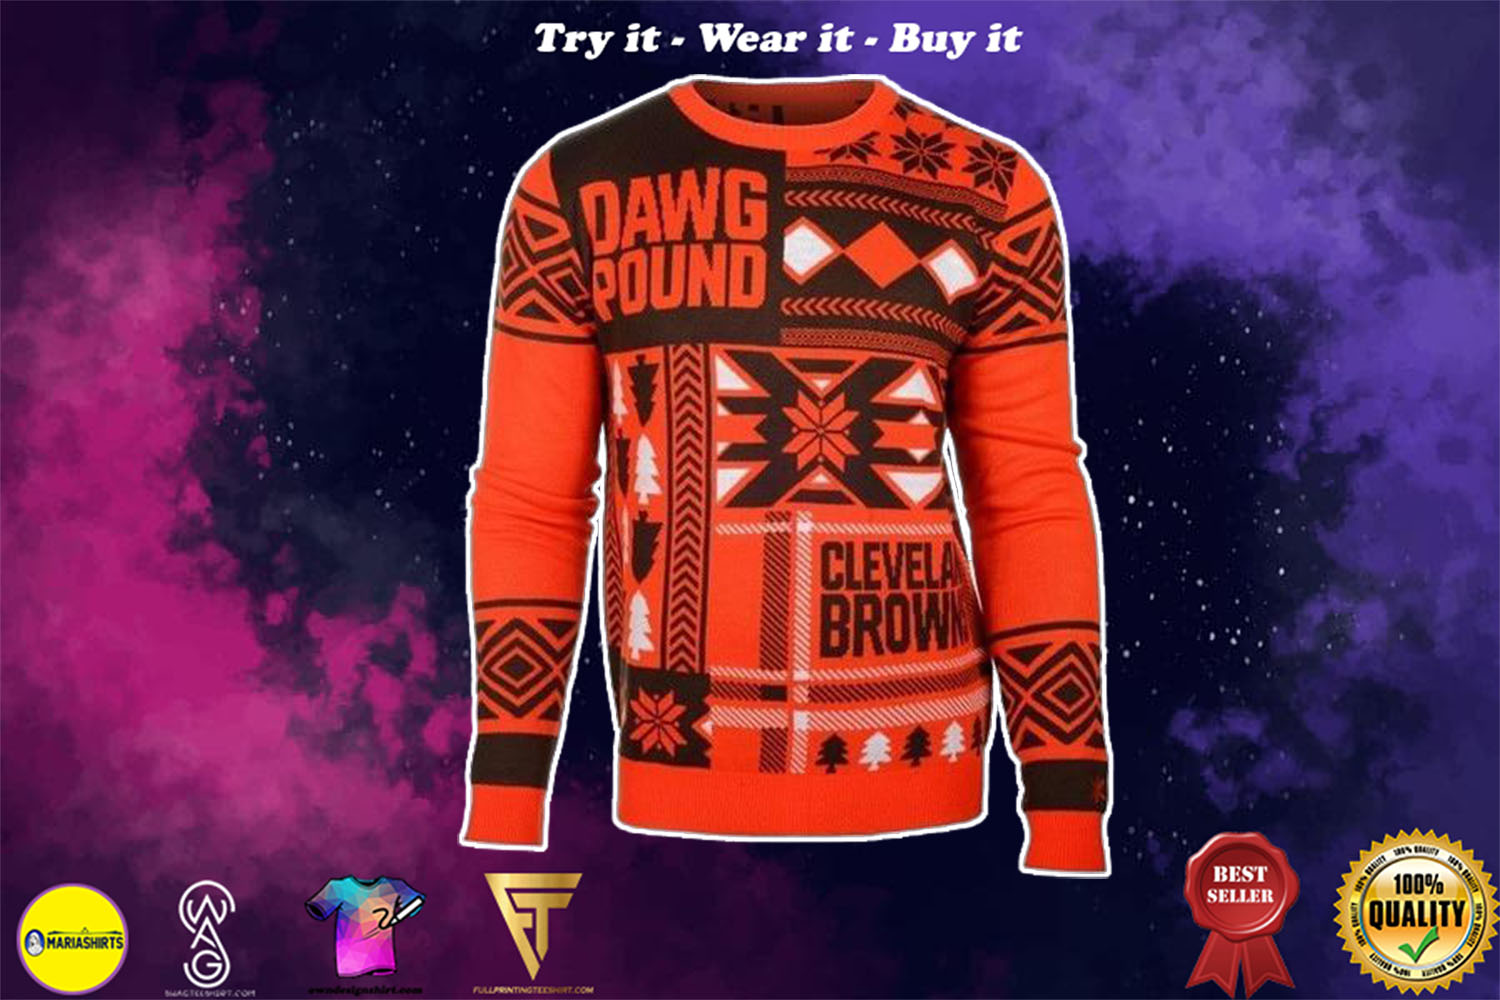 [special edition] cleveland browns patches ugly christmas sweater - maria